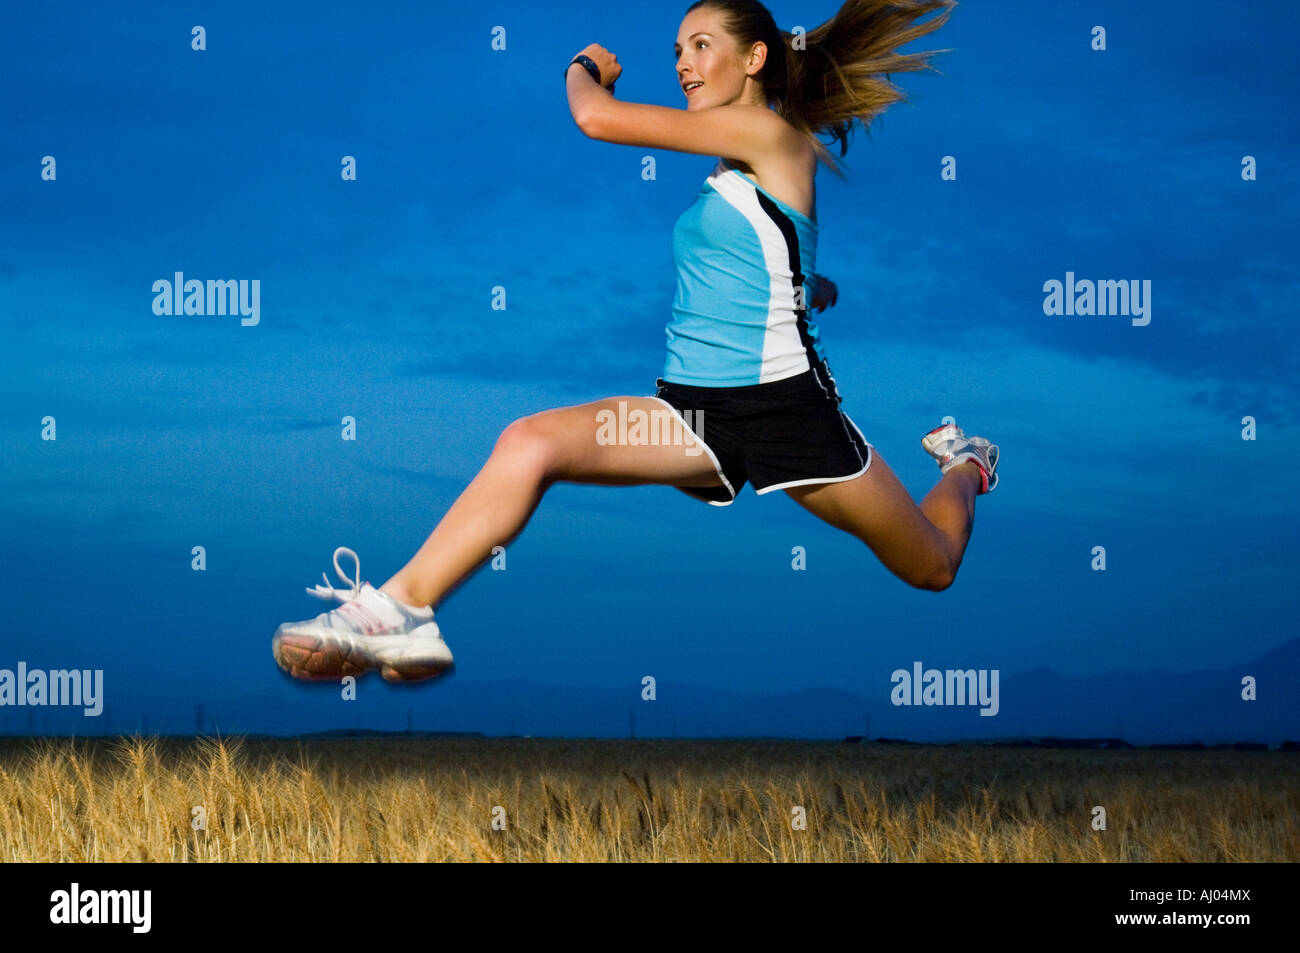 Woman in athletic gear jumping - Stock Image